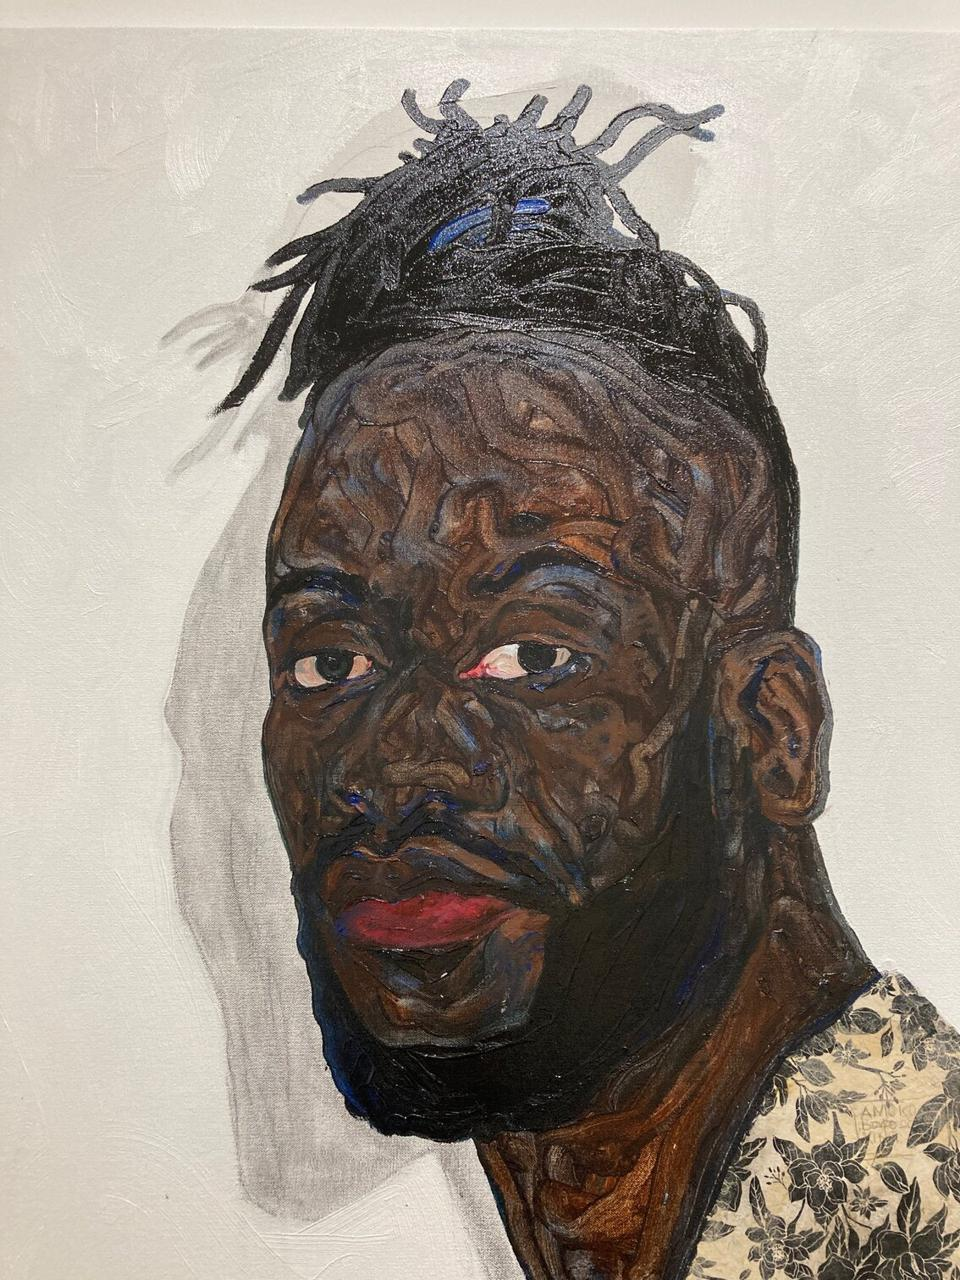 Amoako Boafo, detail, 'Self portrait with blue hair tie,' 2019, oil on canvas, 66 x 66 inches, acquired in 2019. Collection of the Rubell Museum.